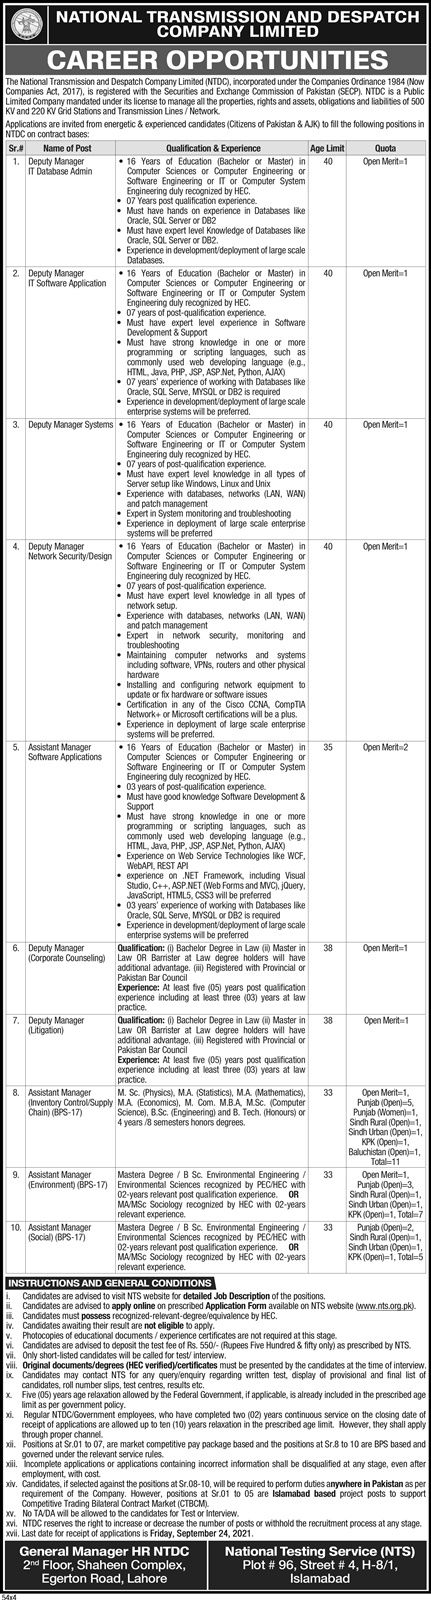 NTDCL Security System Jobs 2021 Application Form NTS Test Dates Eligibility Candidates Lists